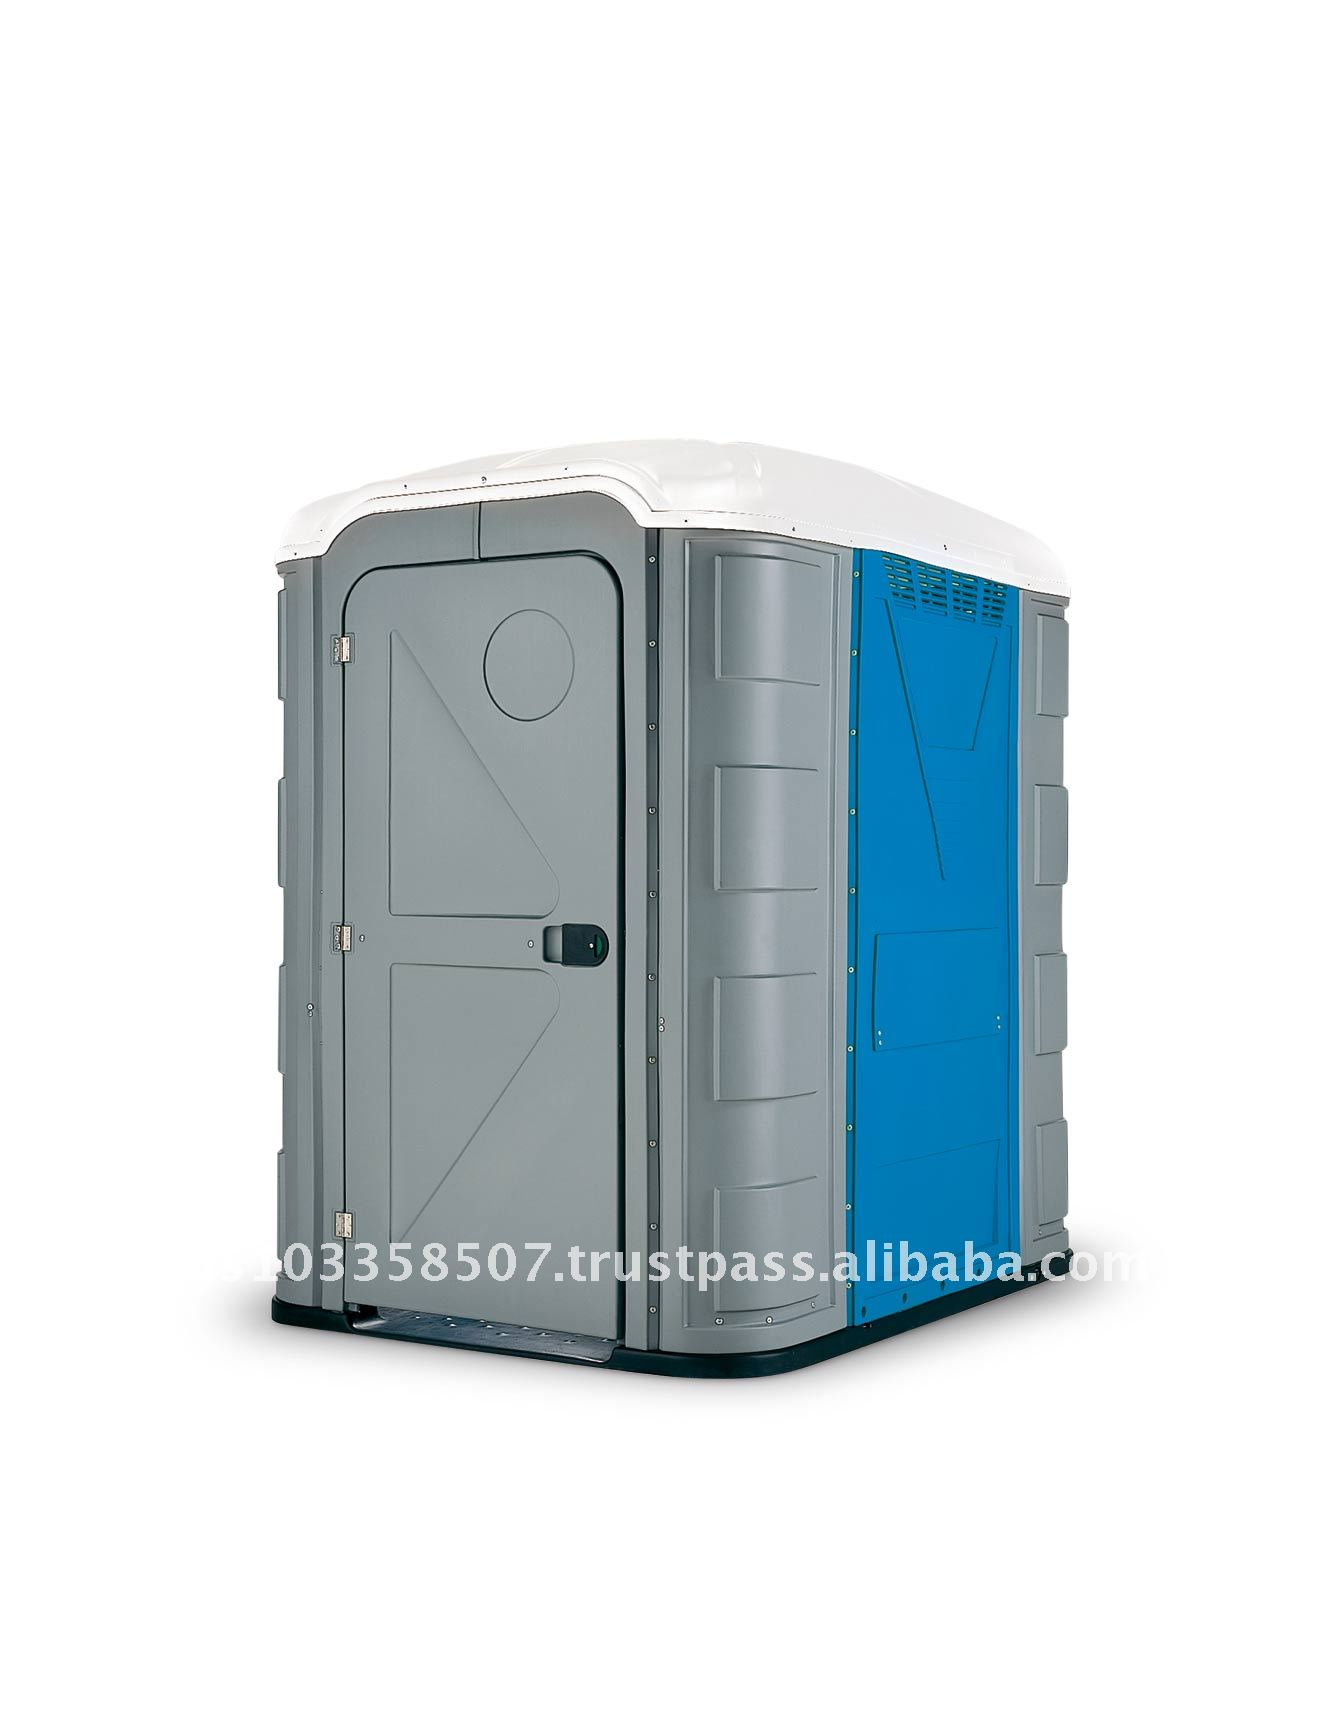 Portable Handicap Toilet, Portable Handicap Toilet Suppliers and ...